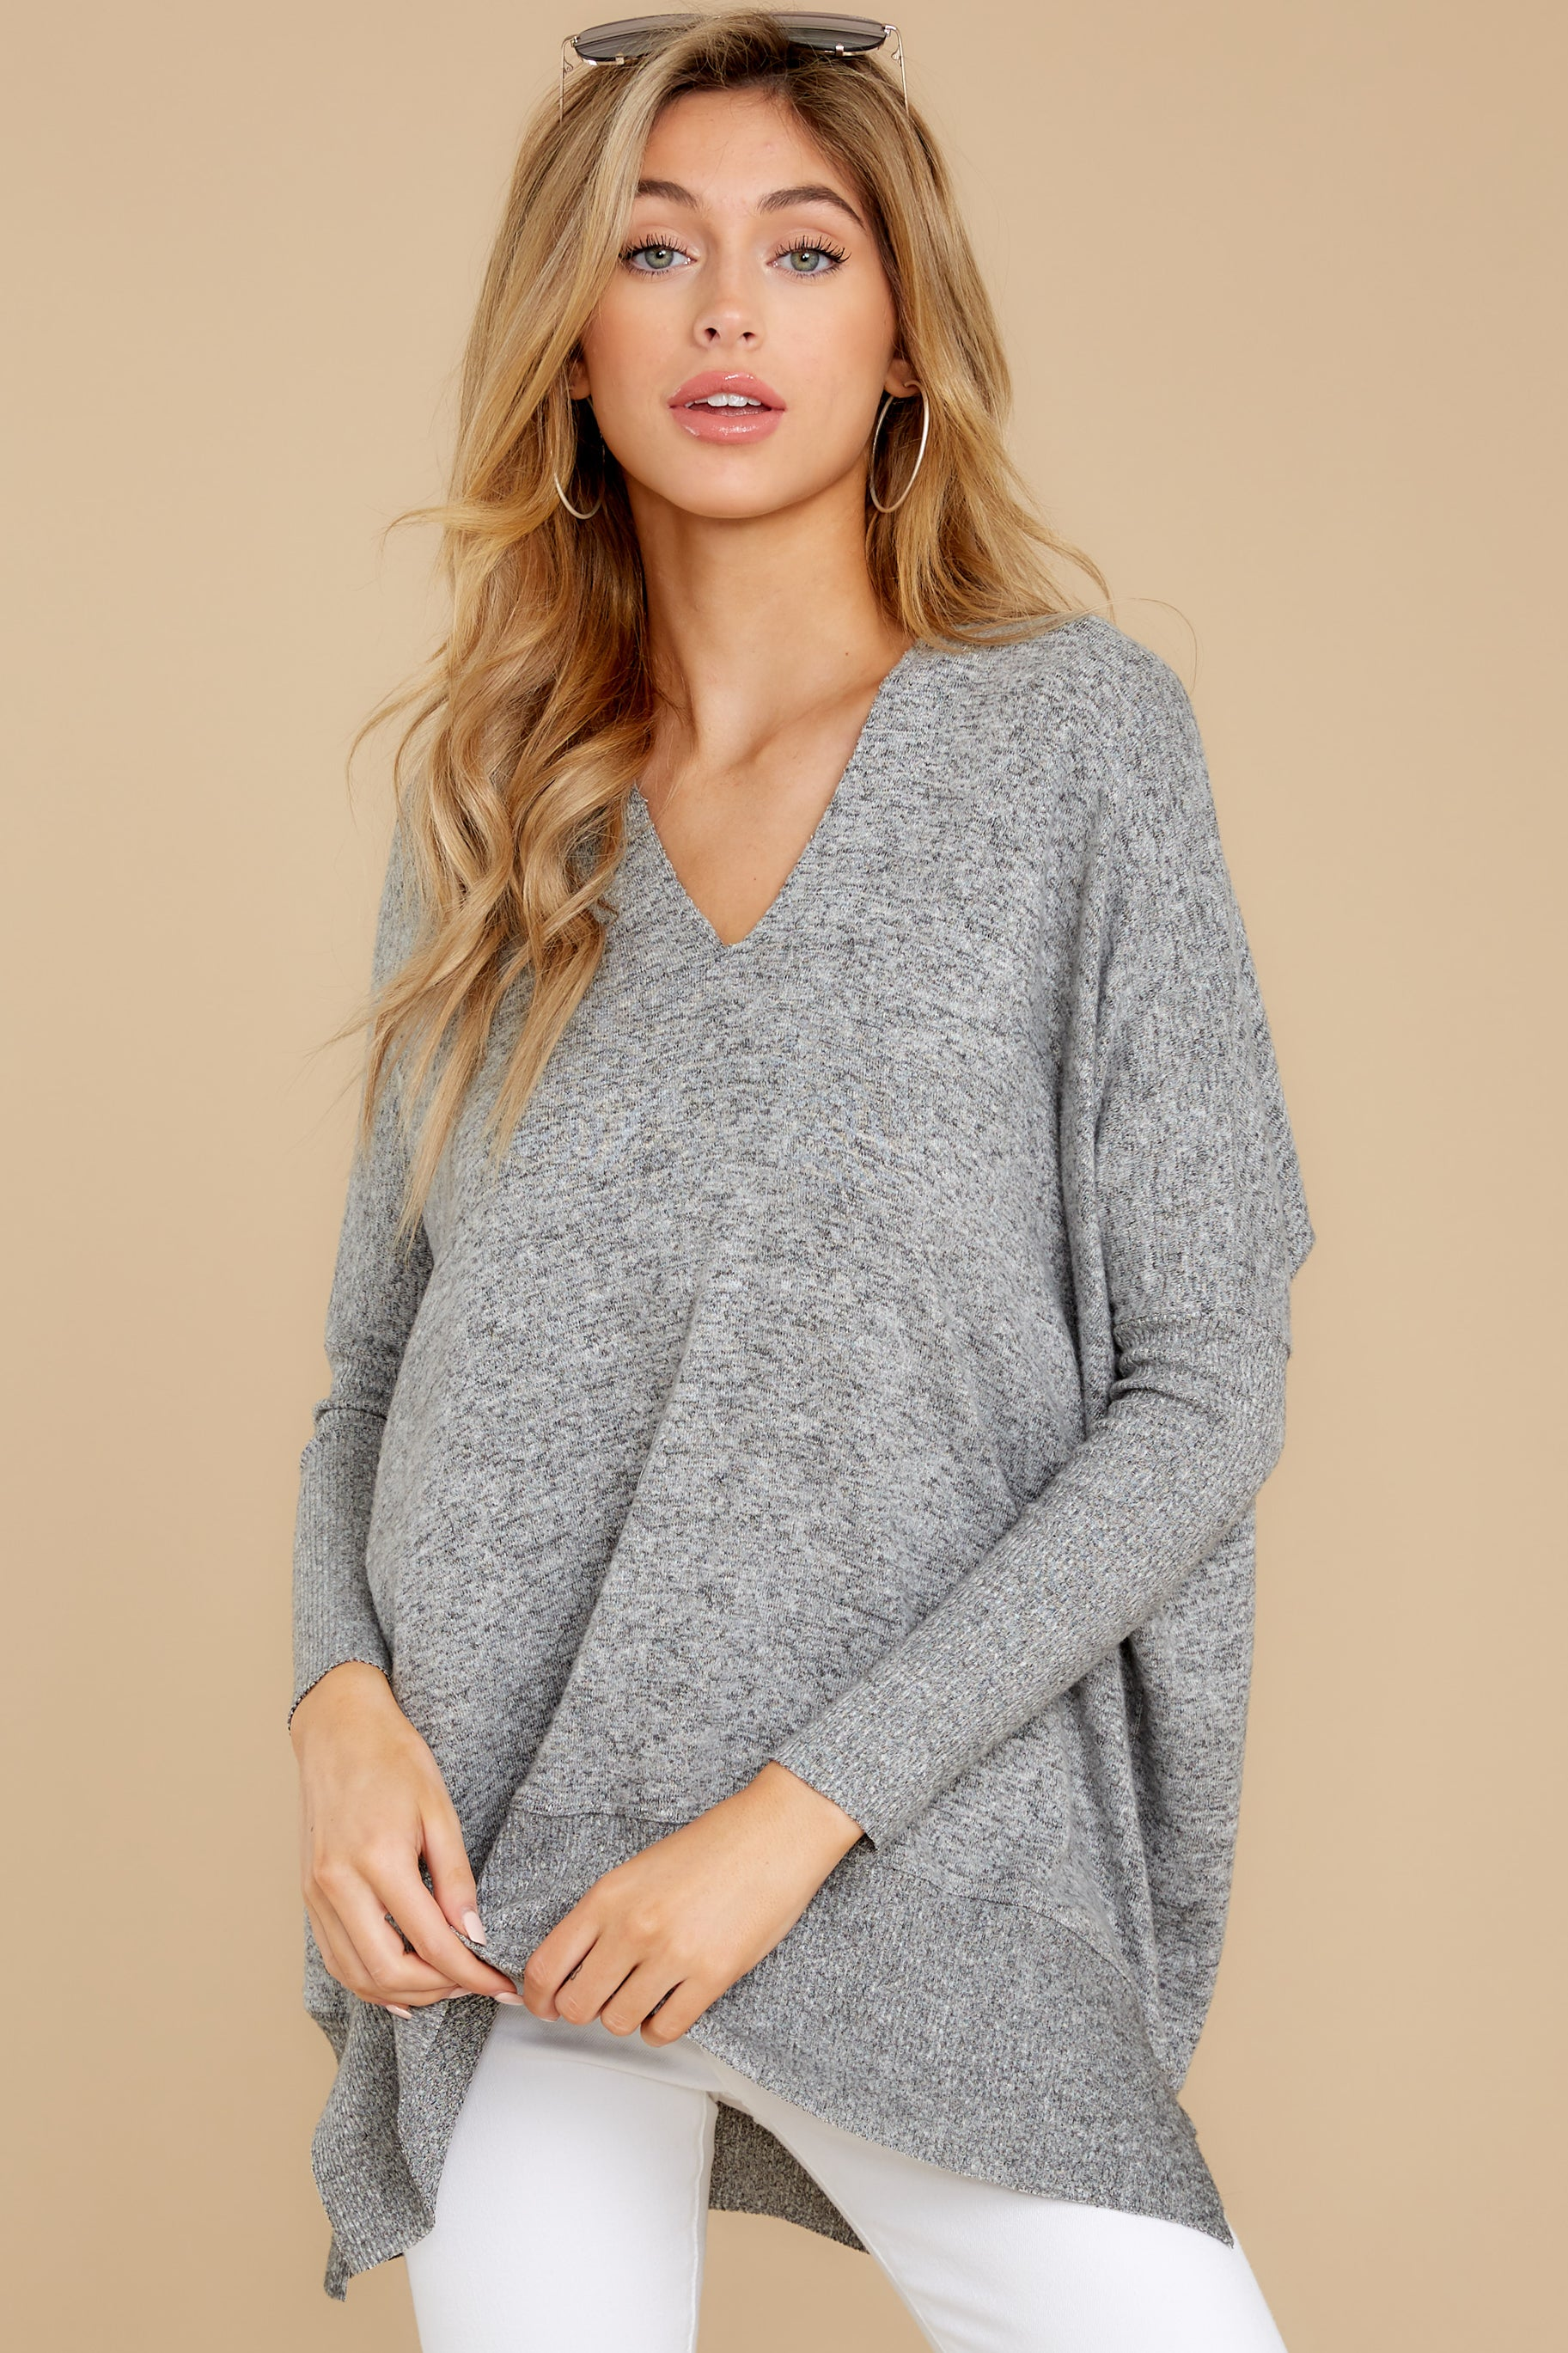 6 Any Which Way Heather Grey Sweater at reddressboutique.com